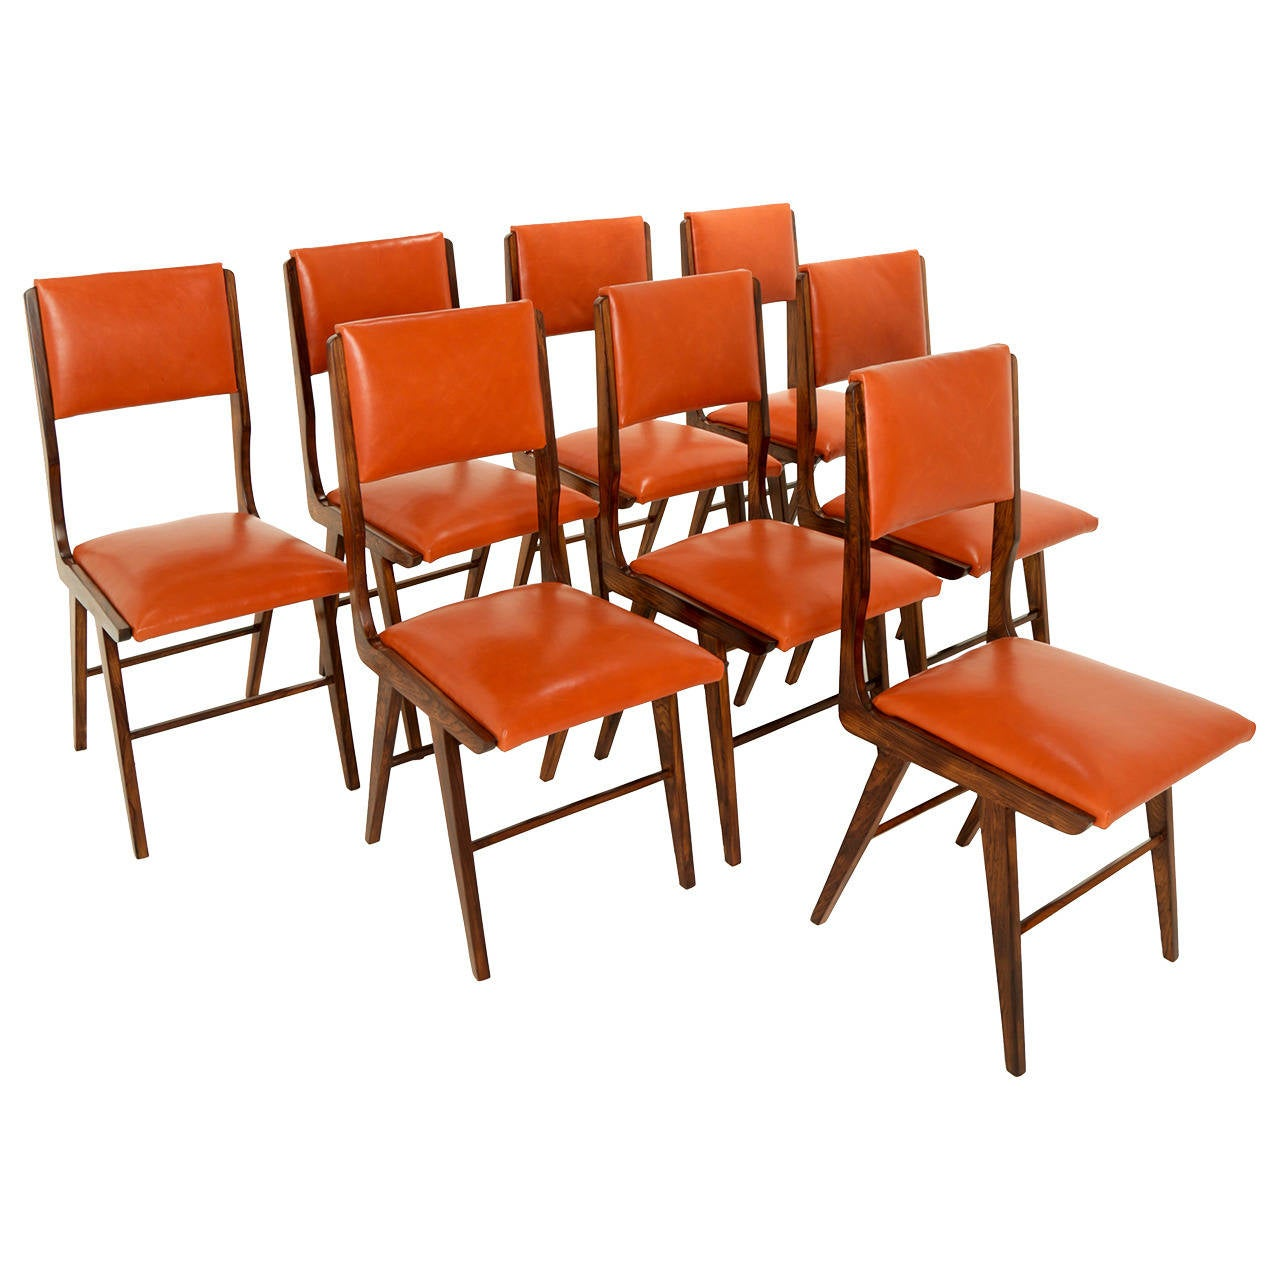 Eight Brazilian Rosewood And Leather Dining Chairs